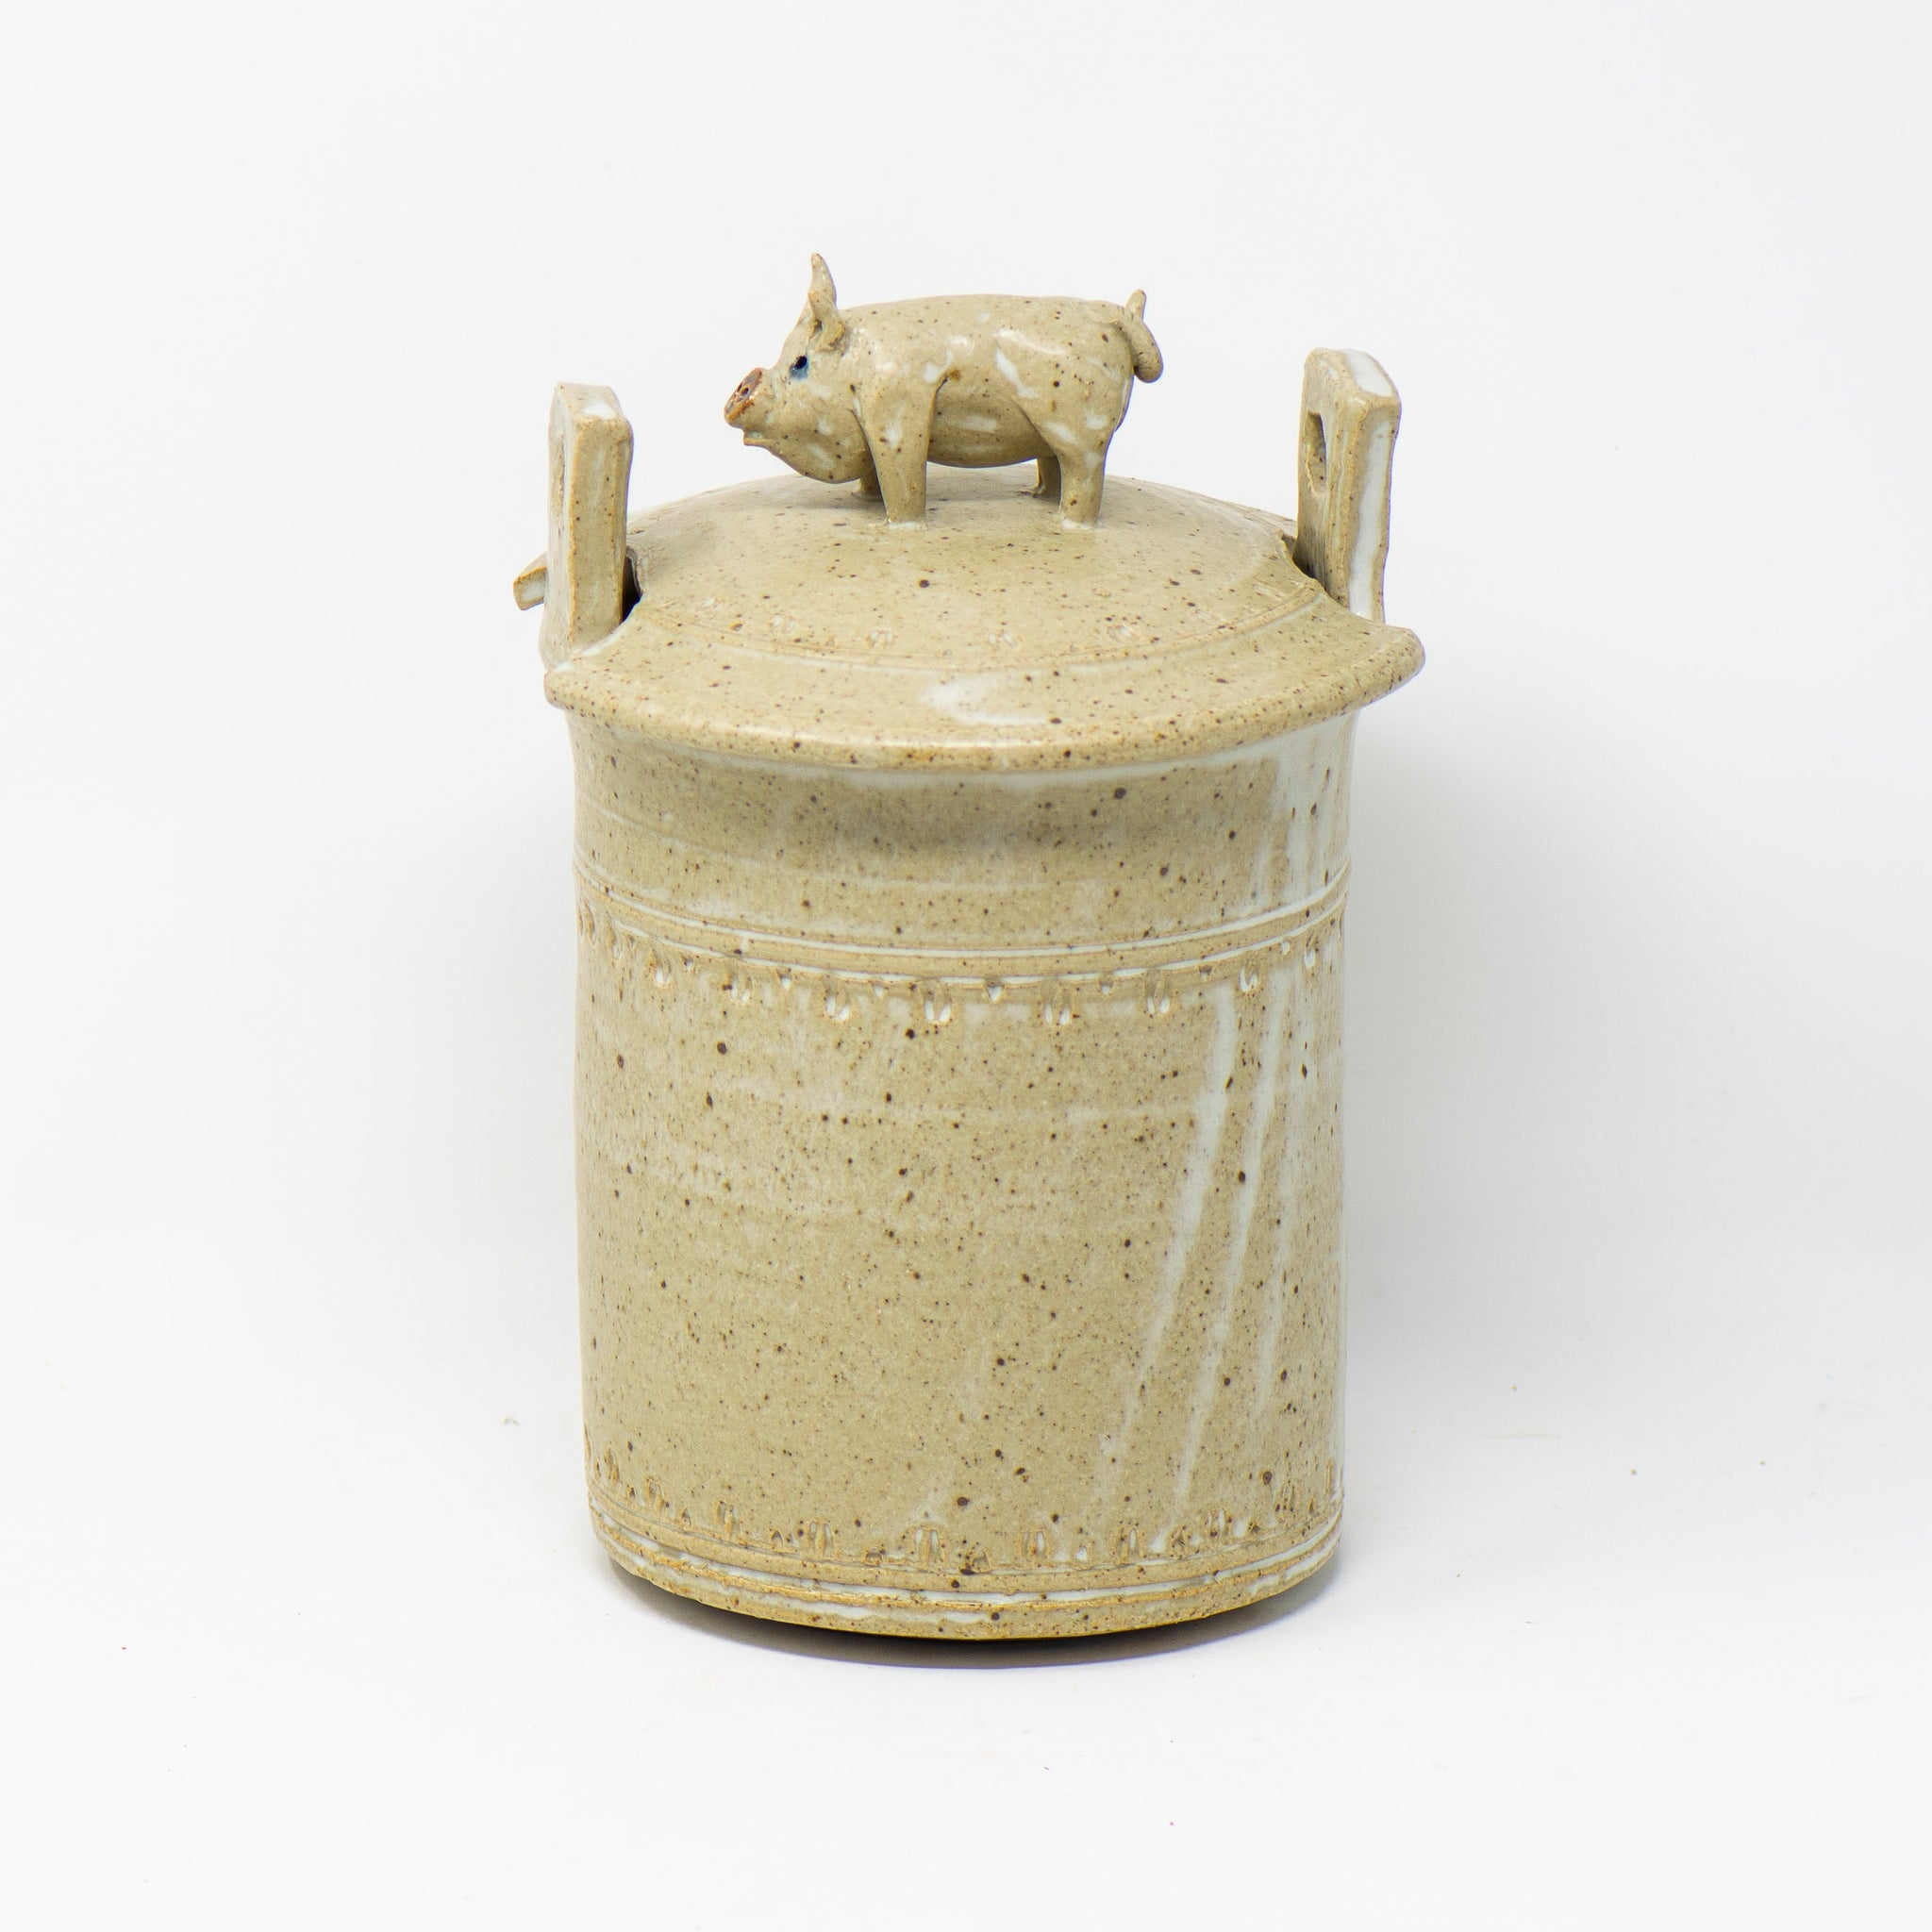 Lidded Crock with Pig Handle